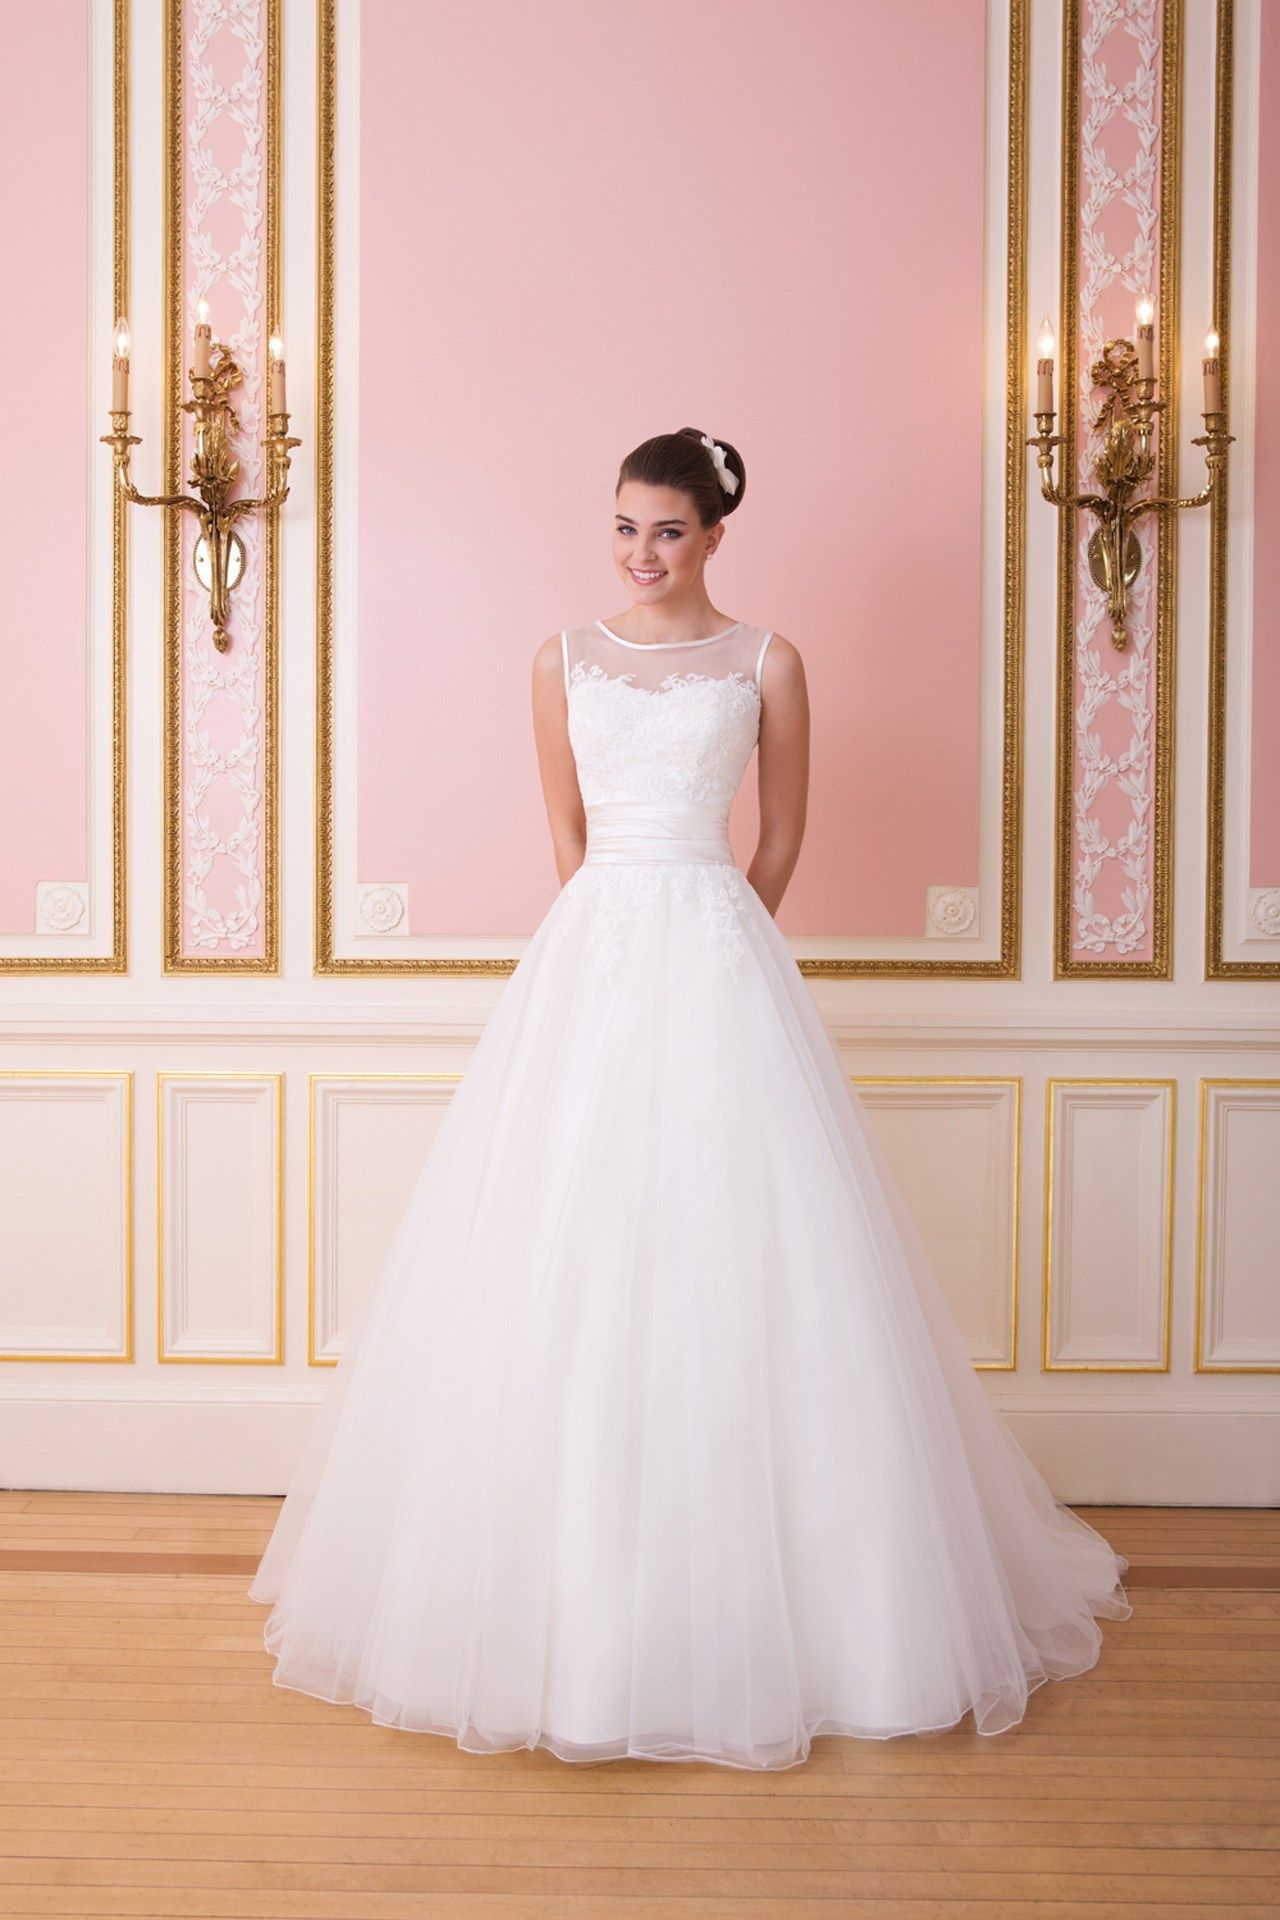 Wedding Dresses - The Ultimate Gallery (BridesMagazine.co.uk ...